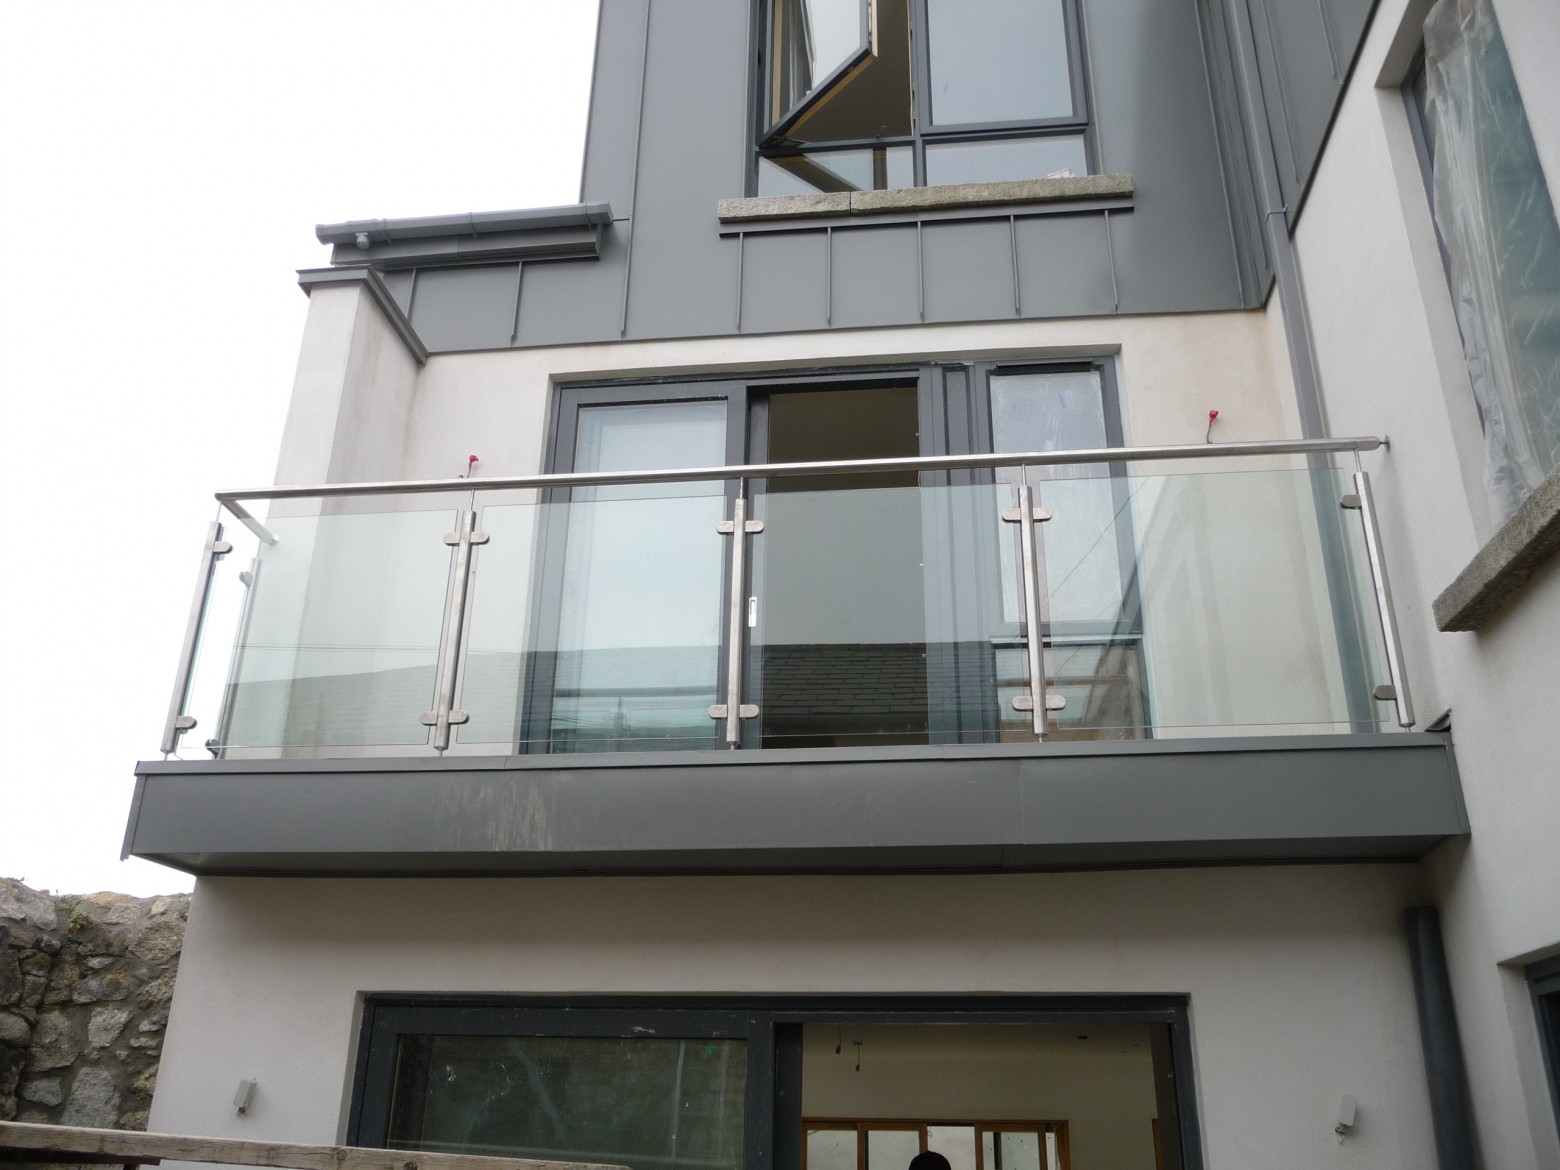 Carrickbrack balcony balustrade spireco spiral stairs for Stainless steel balcony